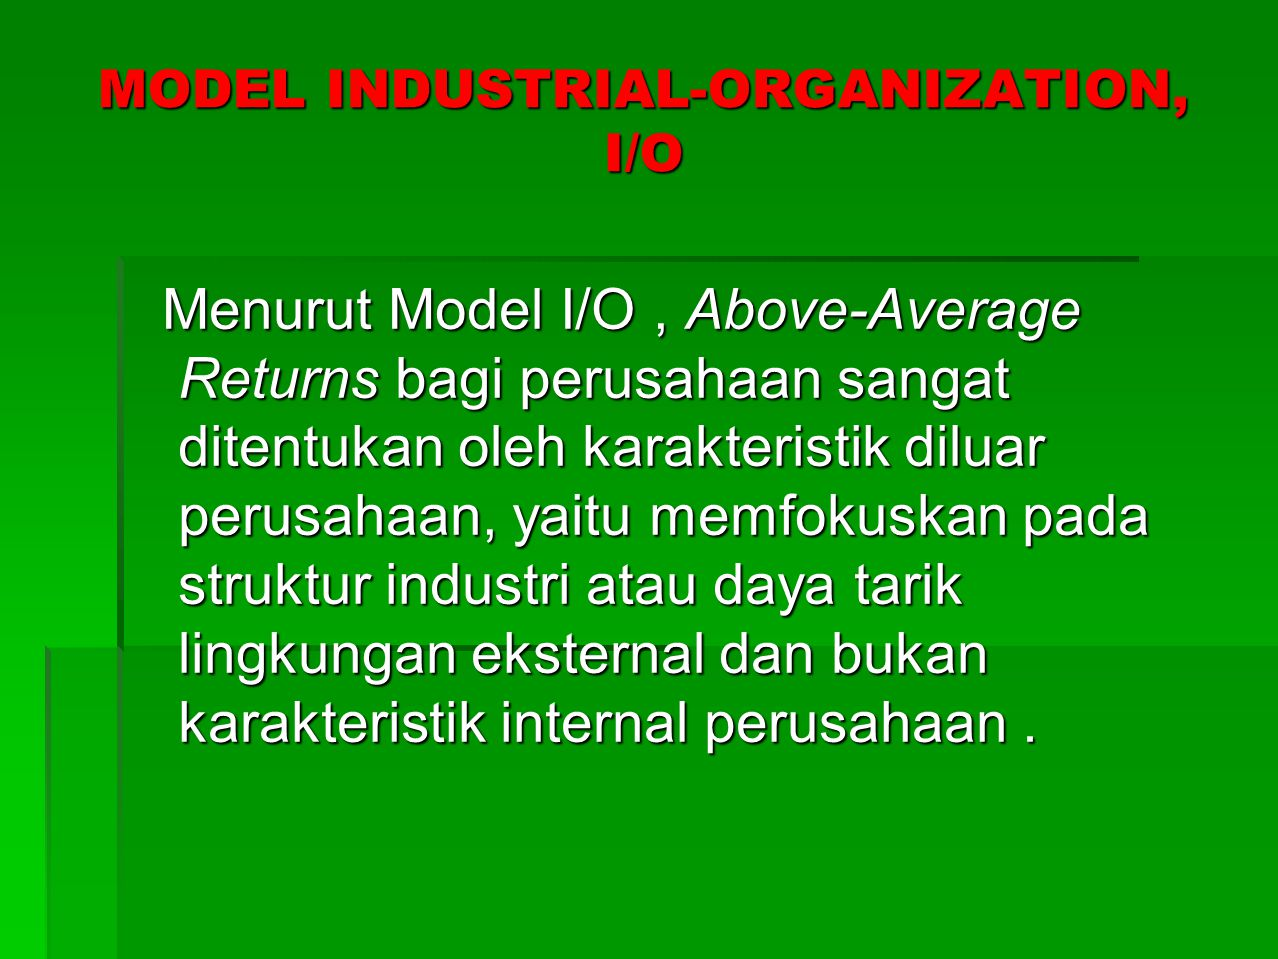 MODEL INDUSTRIAL-ORGANIZATION, I/O